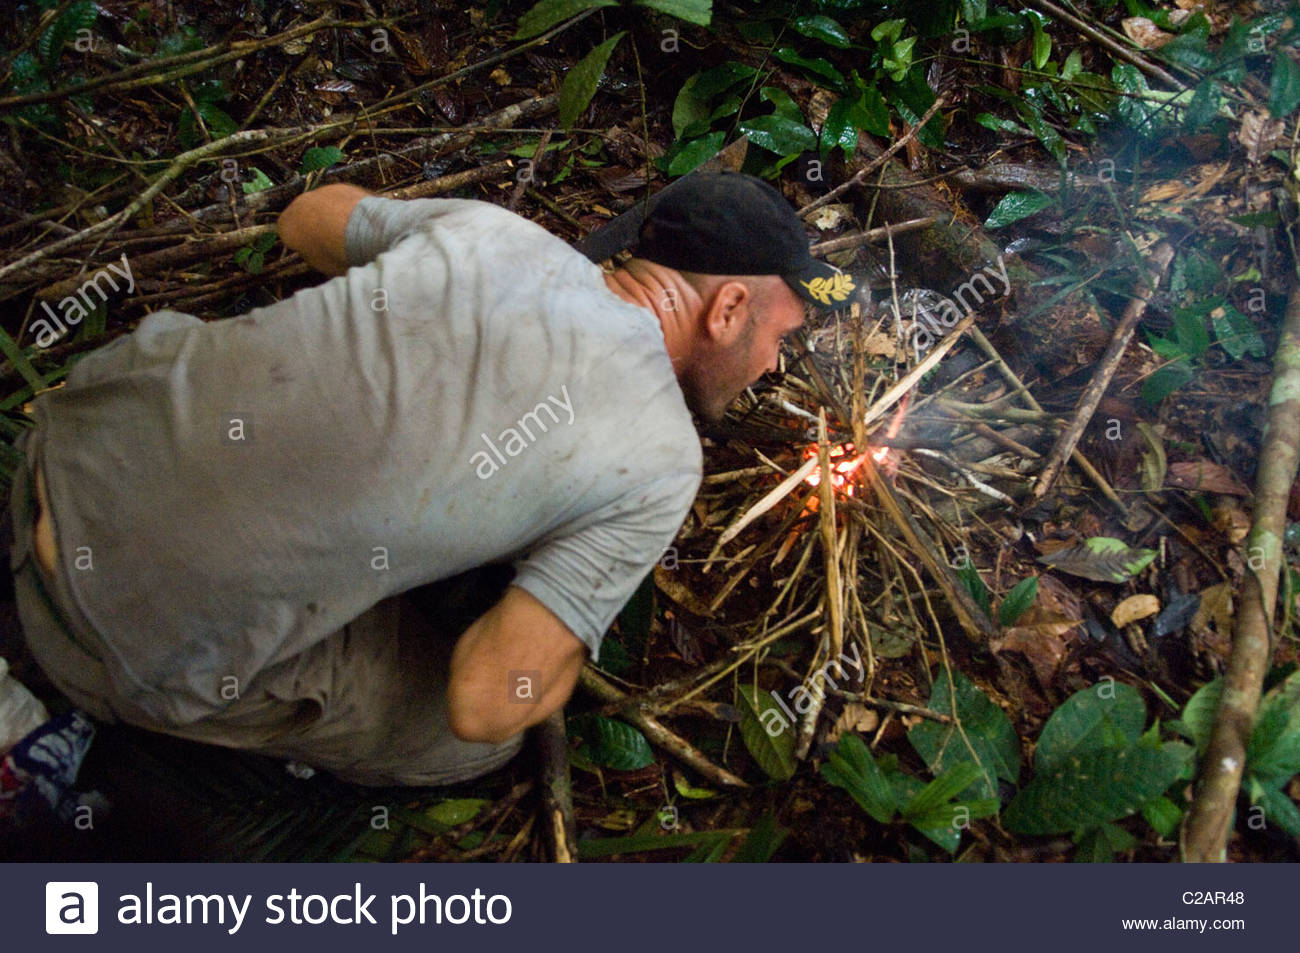 Ed Stafford starts a fire during his 859-day Amazon Jungle walk. - Stock Image